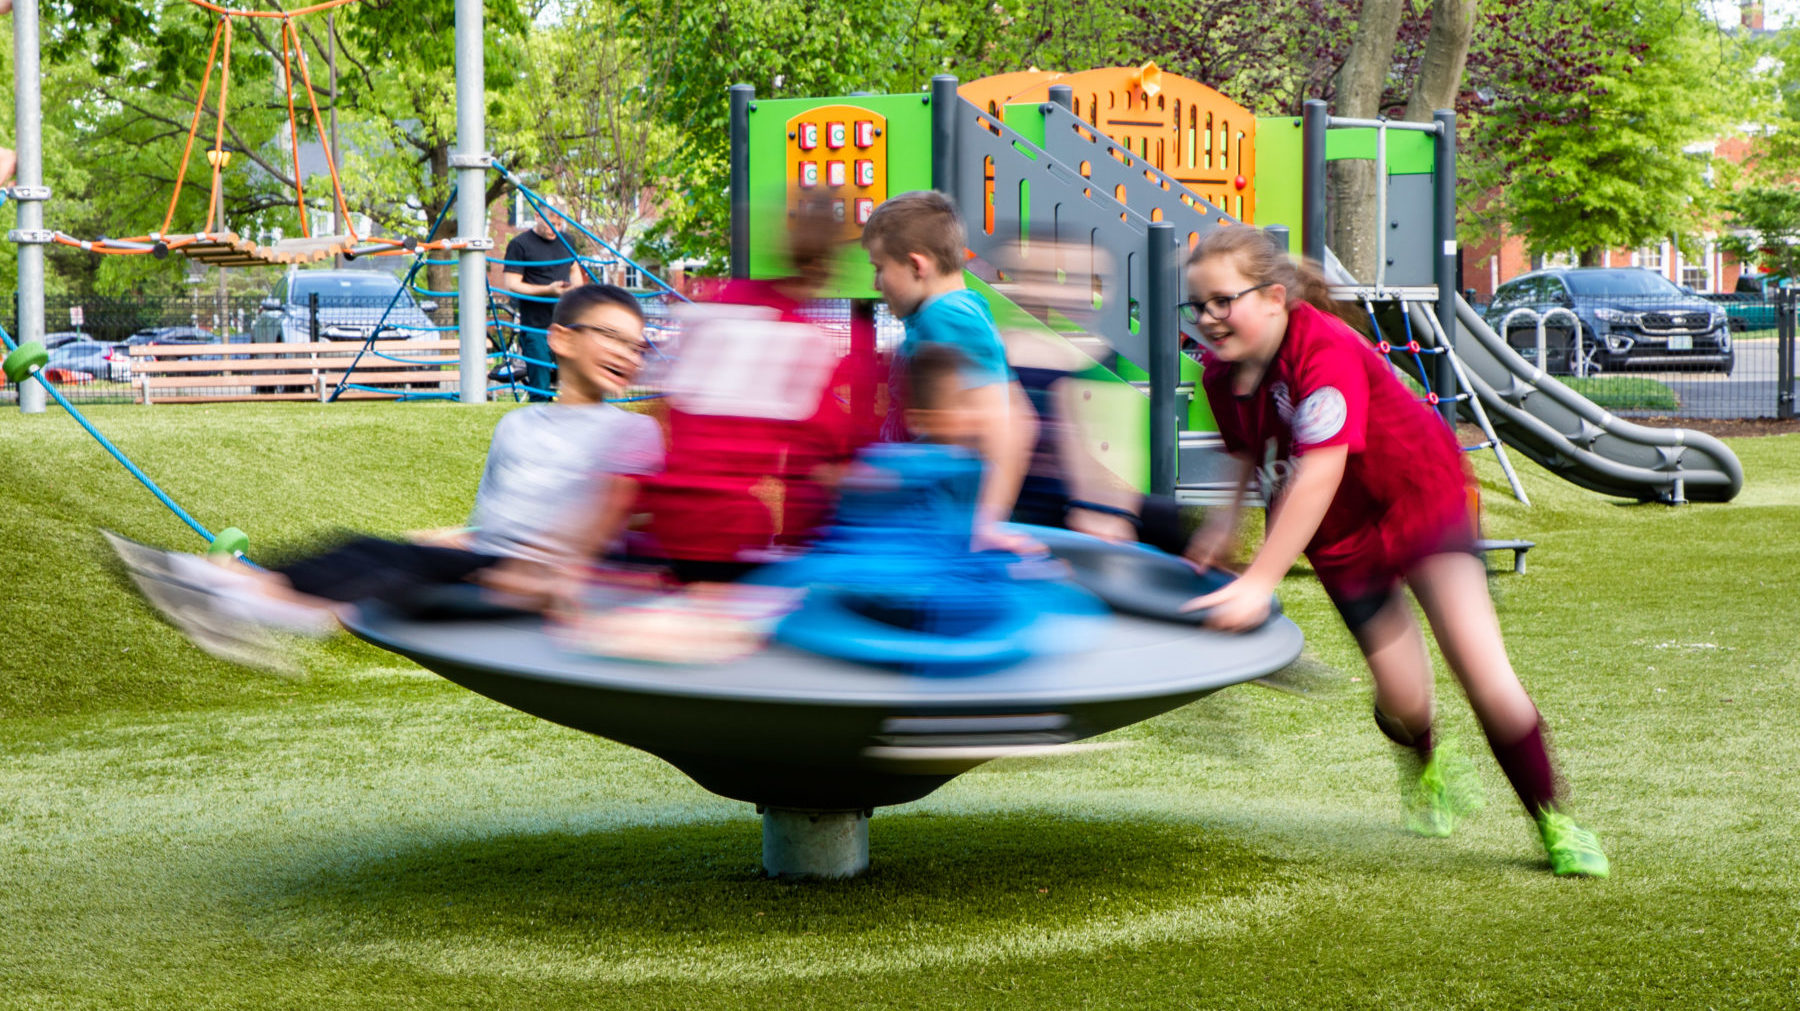 A group of six children in blue and red shirts are playing on a piece of spinning playground equipment, surrounded by green grass and with a large set of orange and green playground equipment in the background.